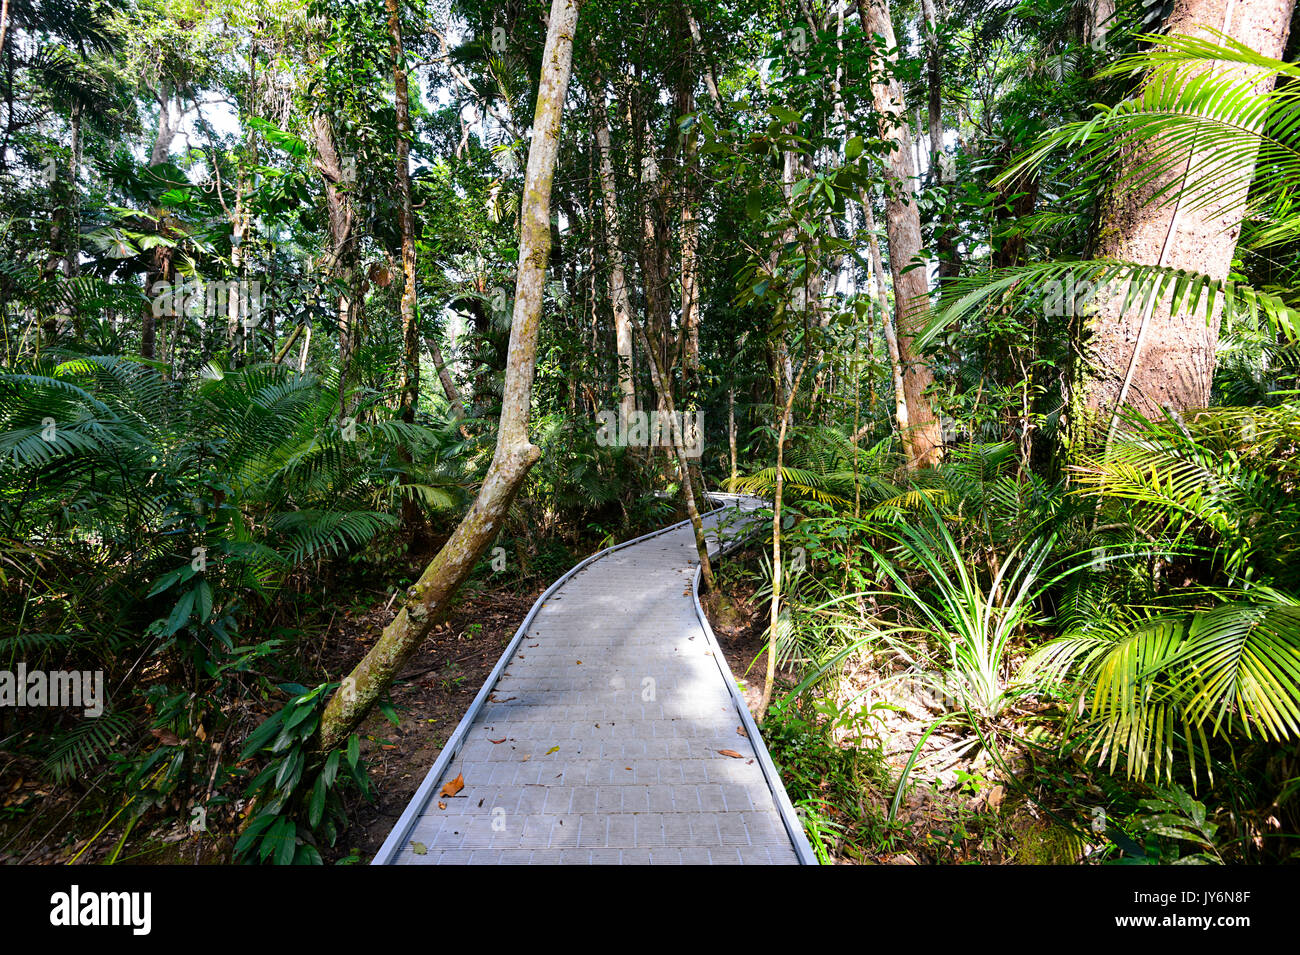 Marrdja Boardwalk, Cape Tribulation, Daintree National Park, Far North Queensland, FNQ, QLD, Australia - Stock Image